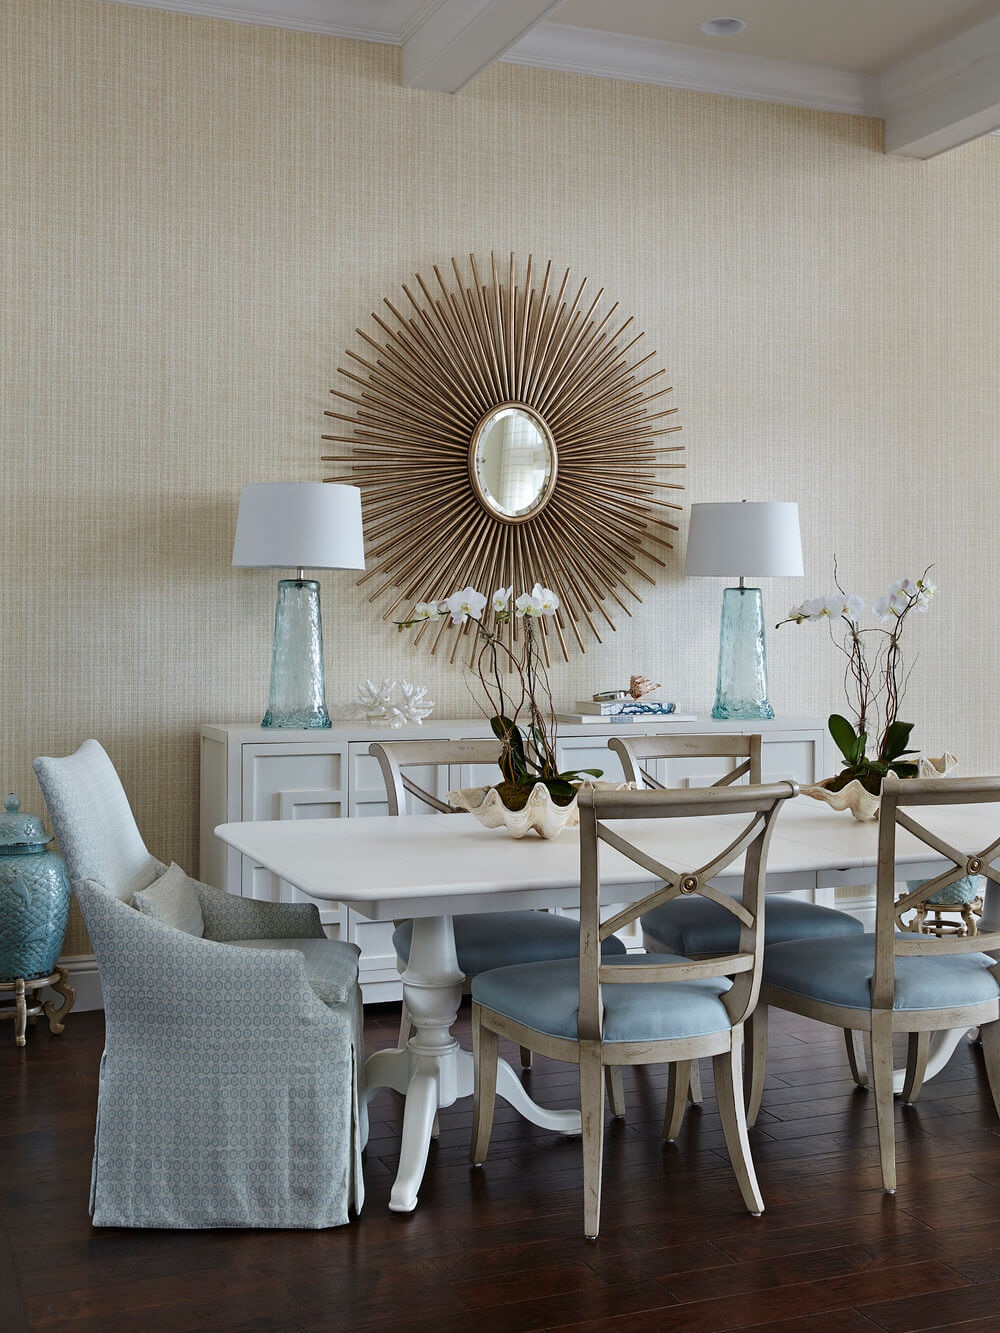 Beach Dining Room Ideas Coastal Dining Room Decor 2019